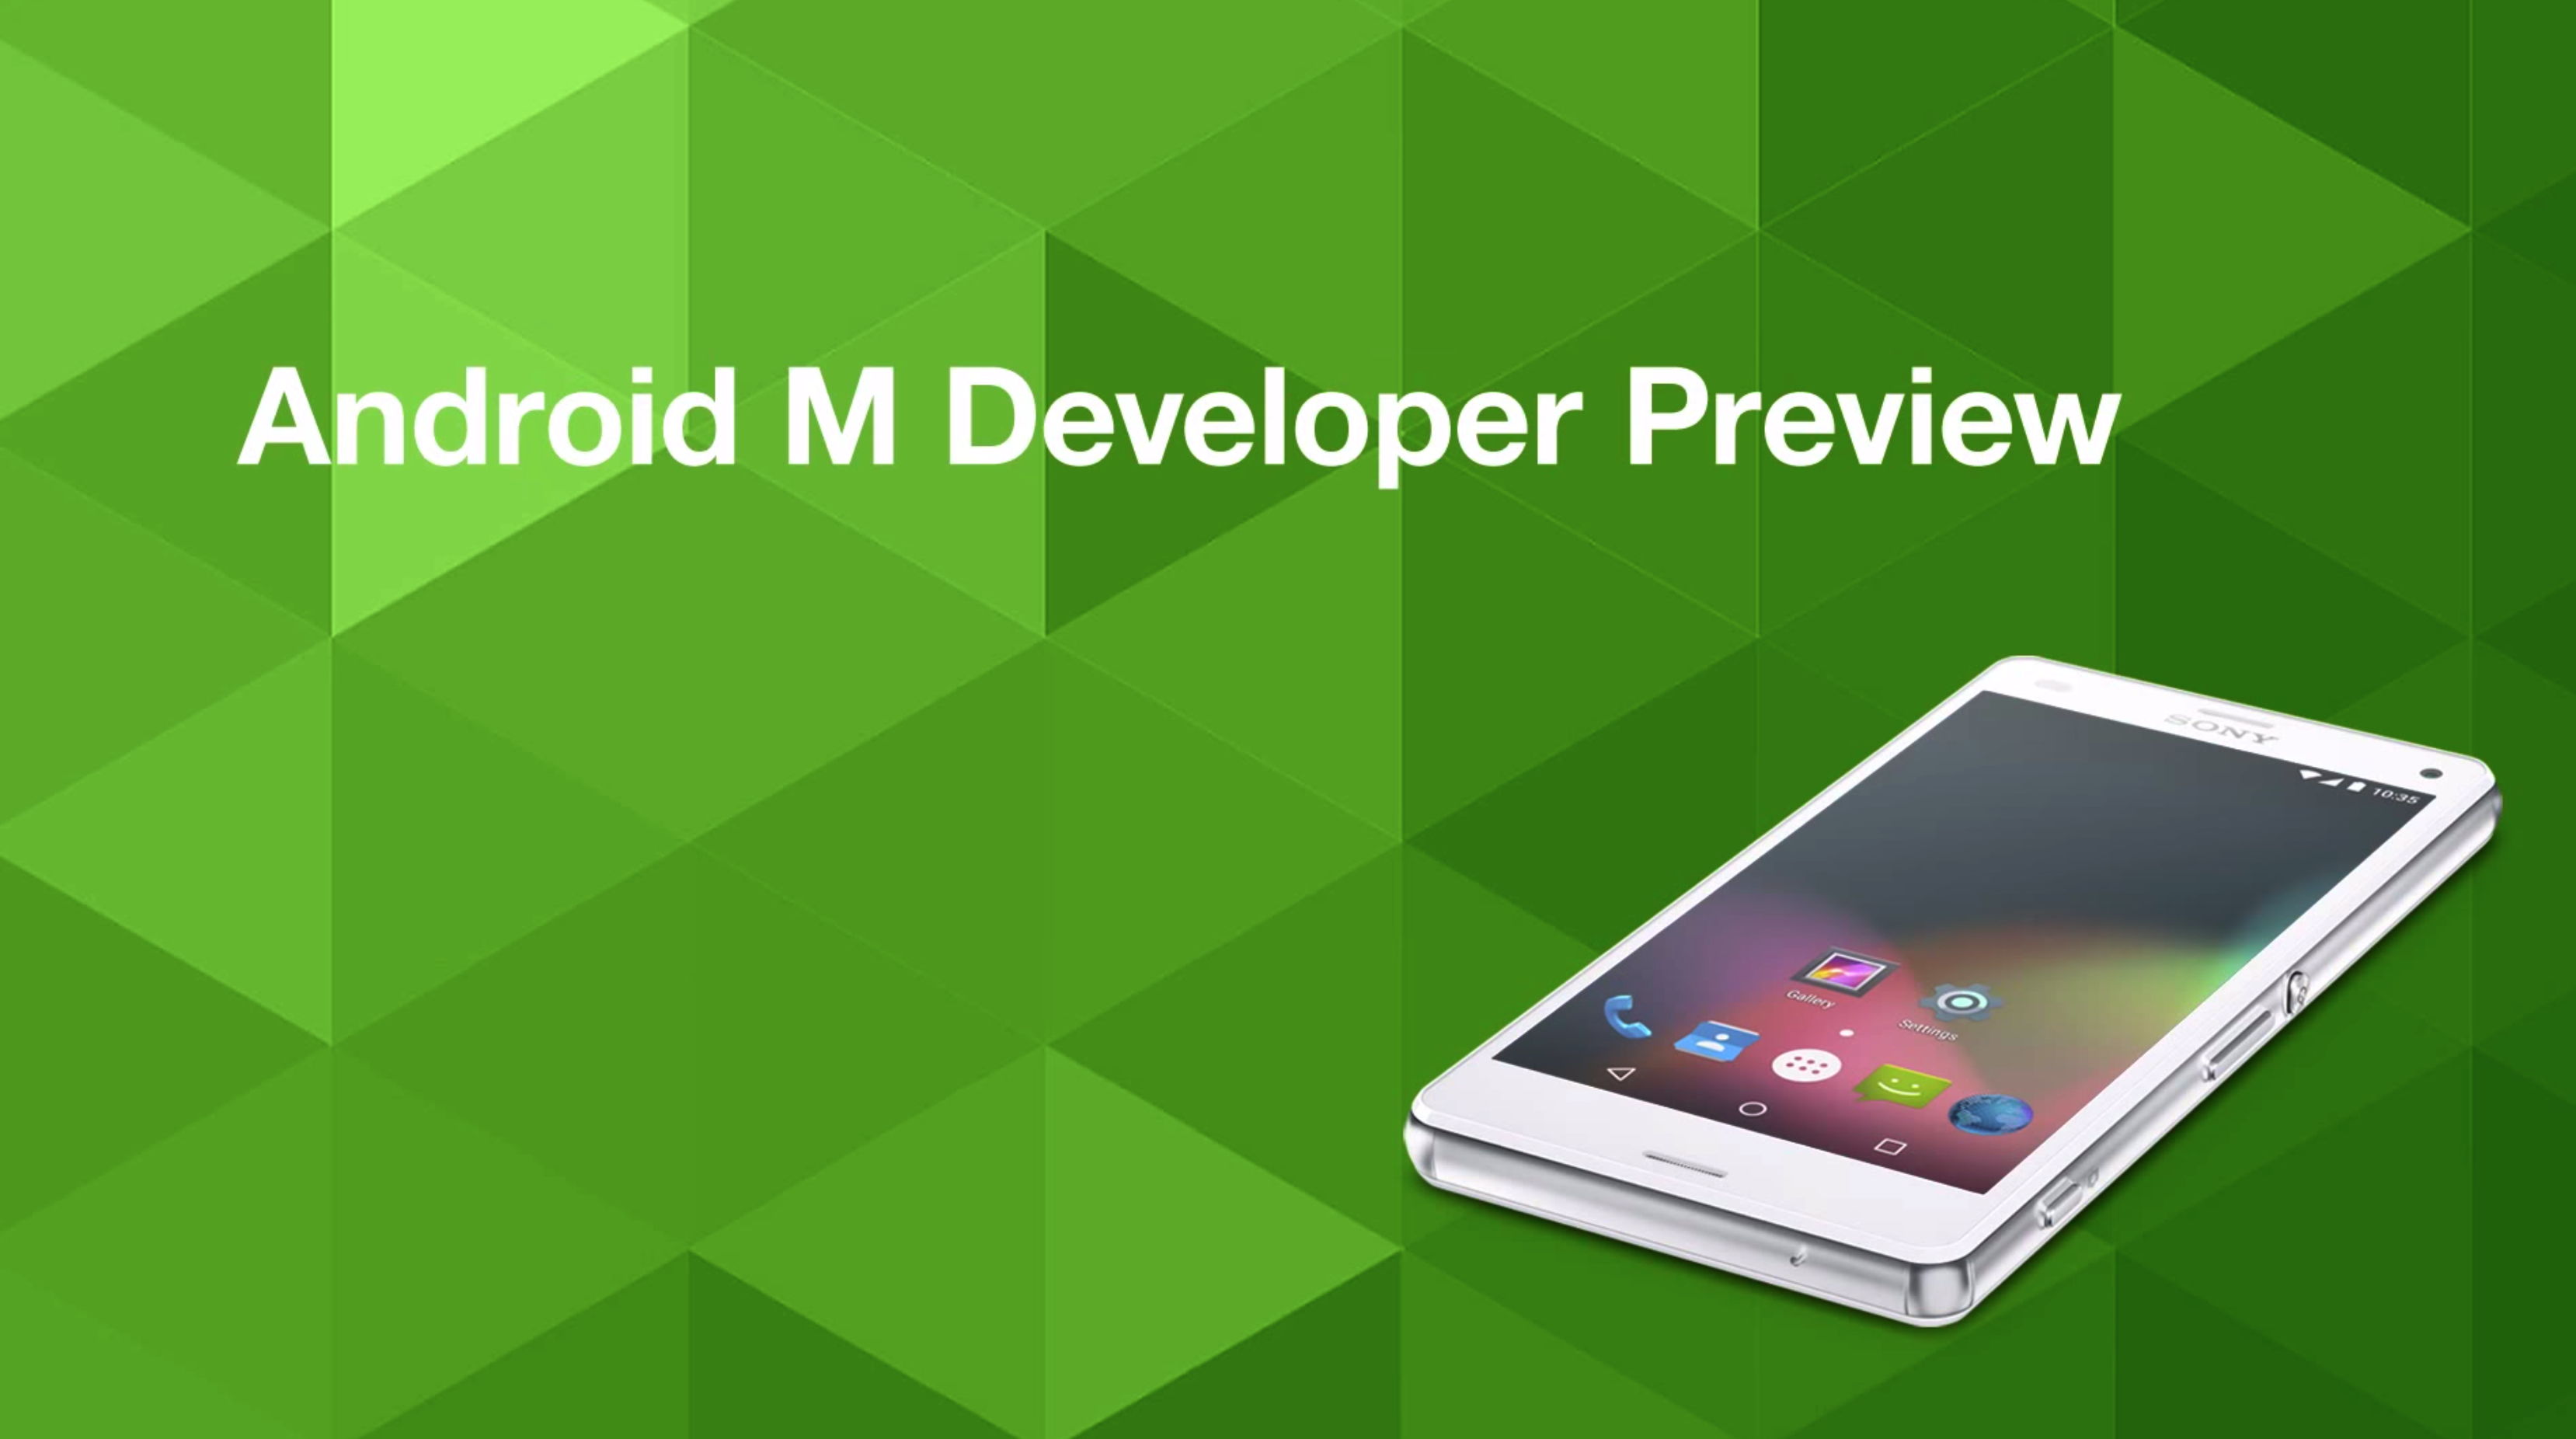 Android M Developer Preview 3 is available, the latest step to get Android 6.0 Marshmallow 1